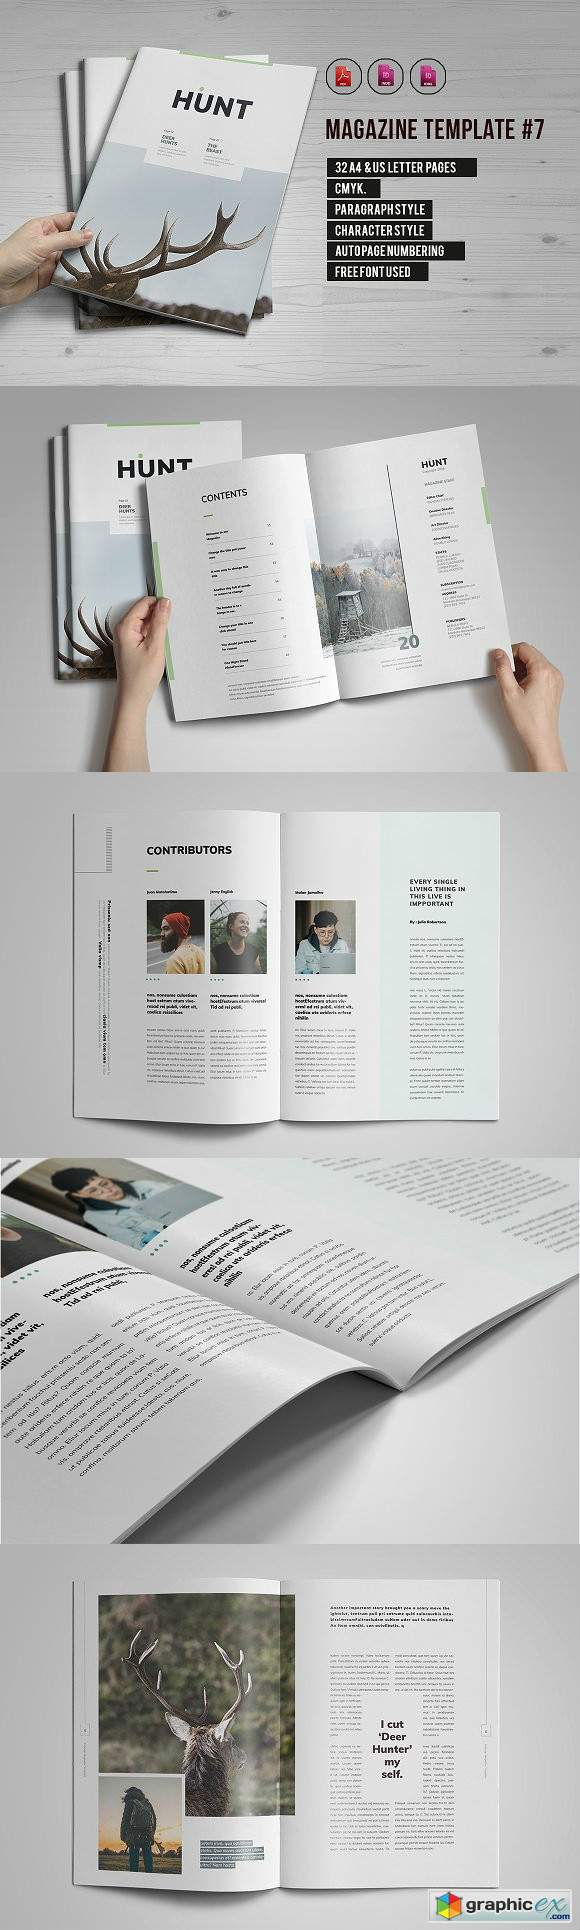 Indesign Magazine Template 7